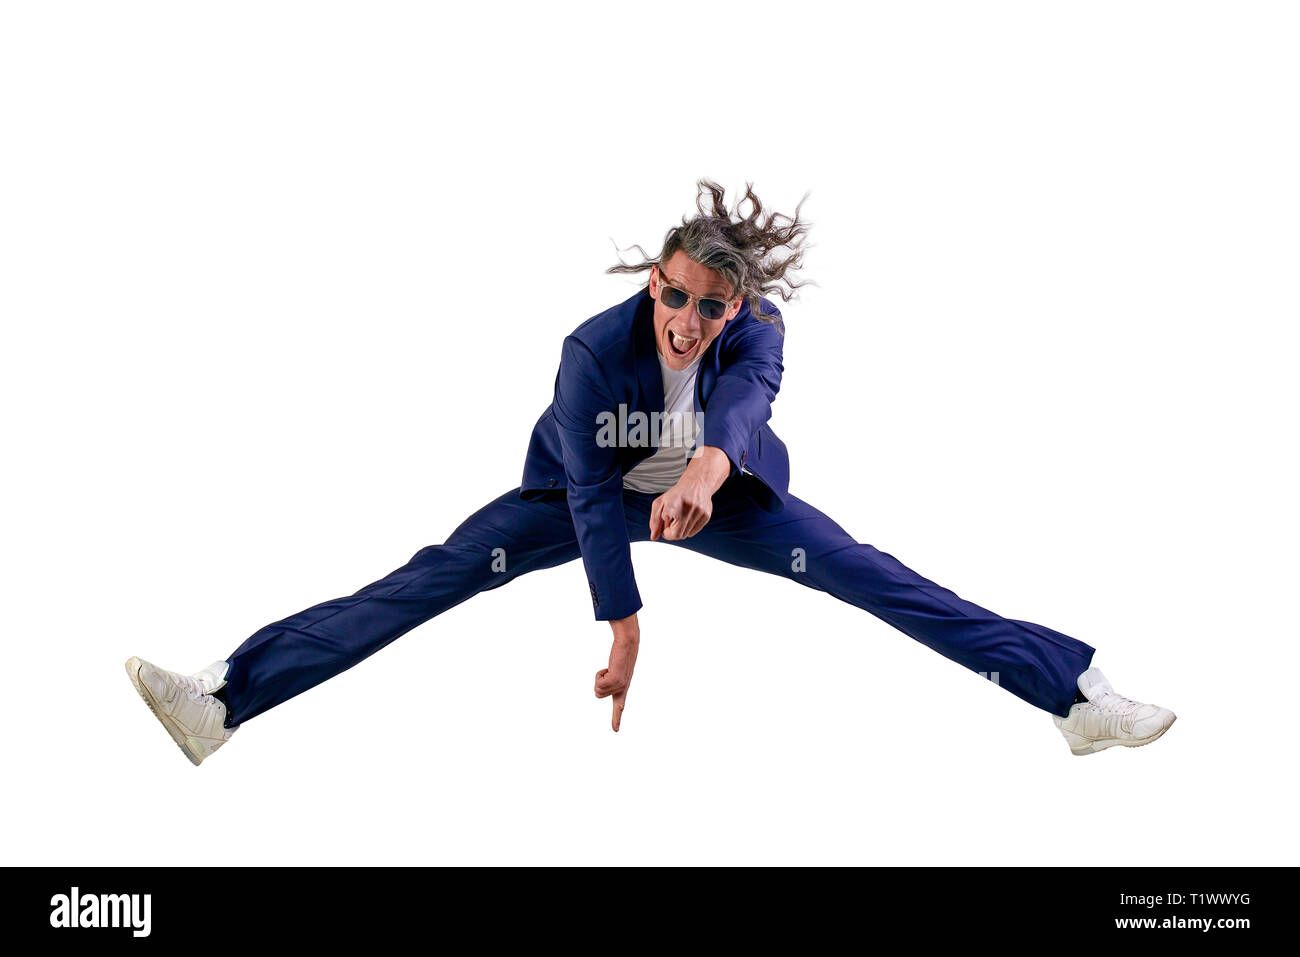 Confident Smart Looking Man Laughing and Jumping Up, Enjoying His Success - Wearing siut, isolated on white background - Real laugh, real jump... - Stock Image